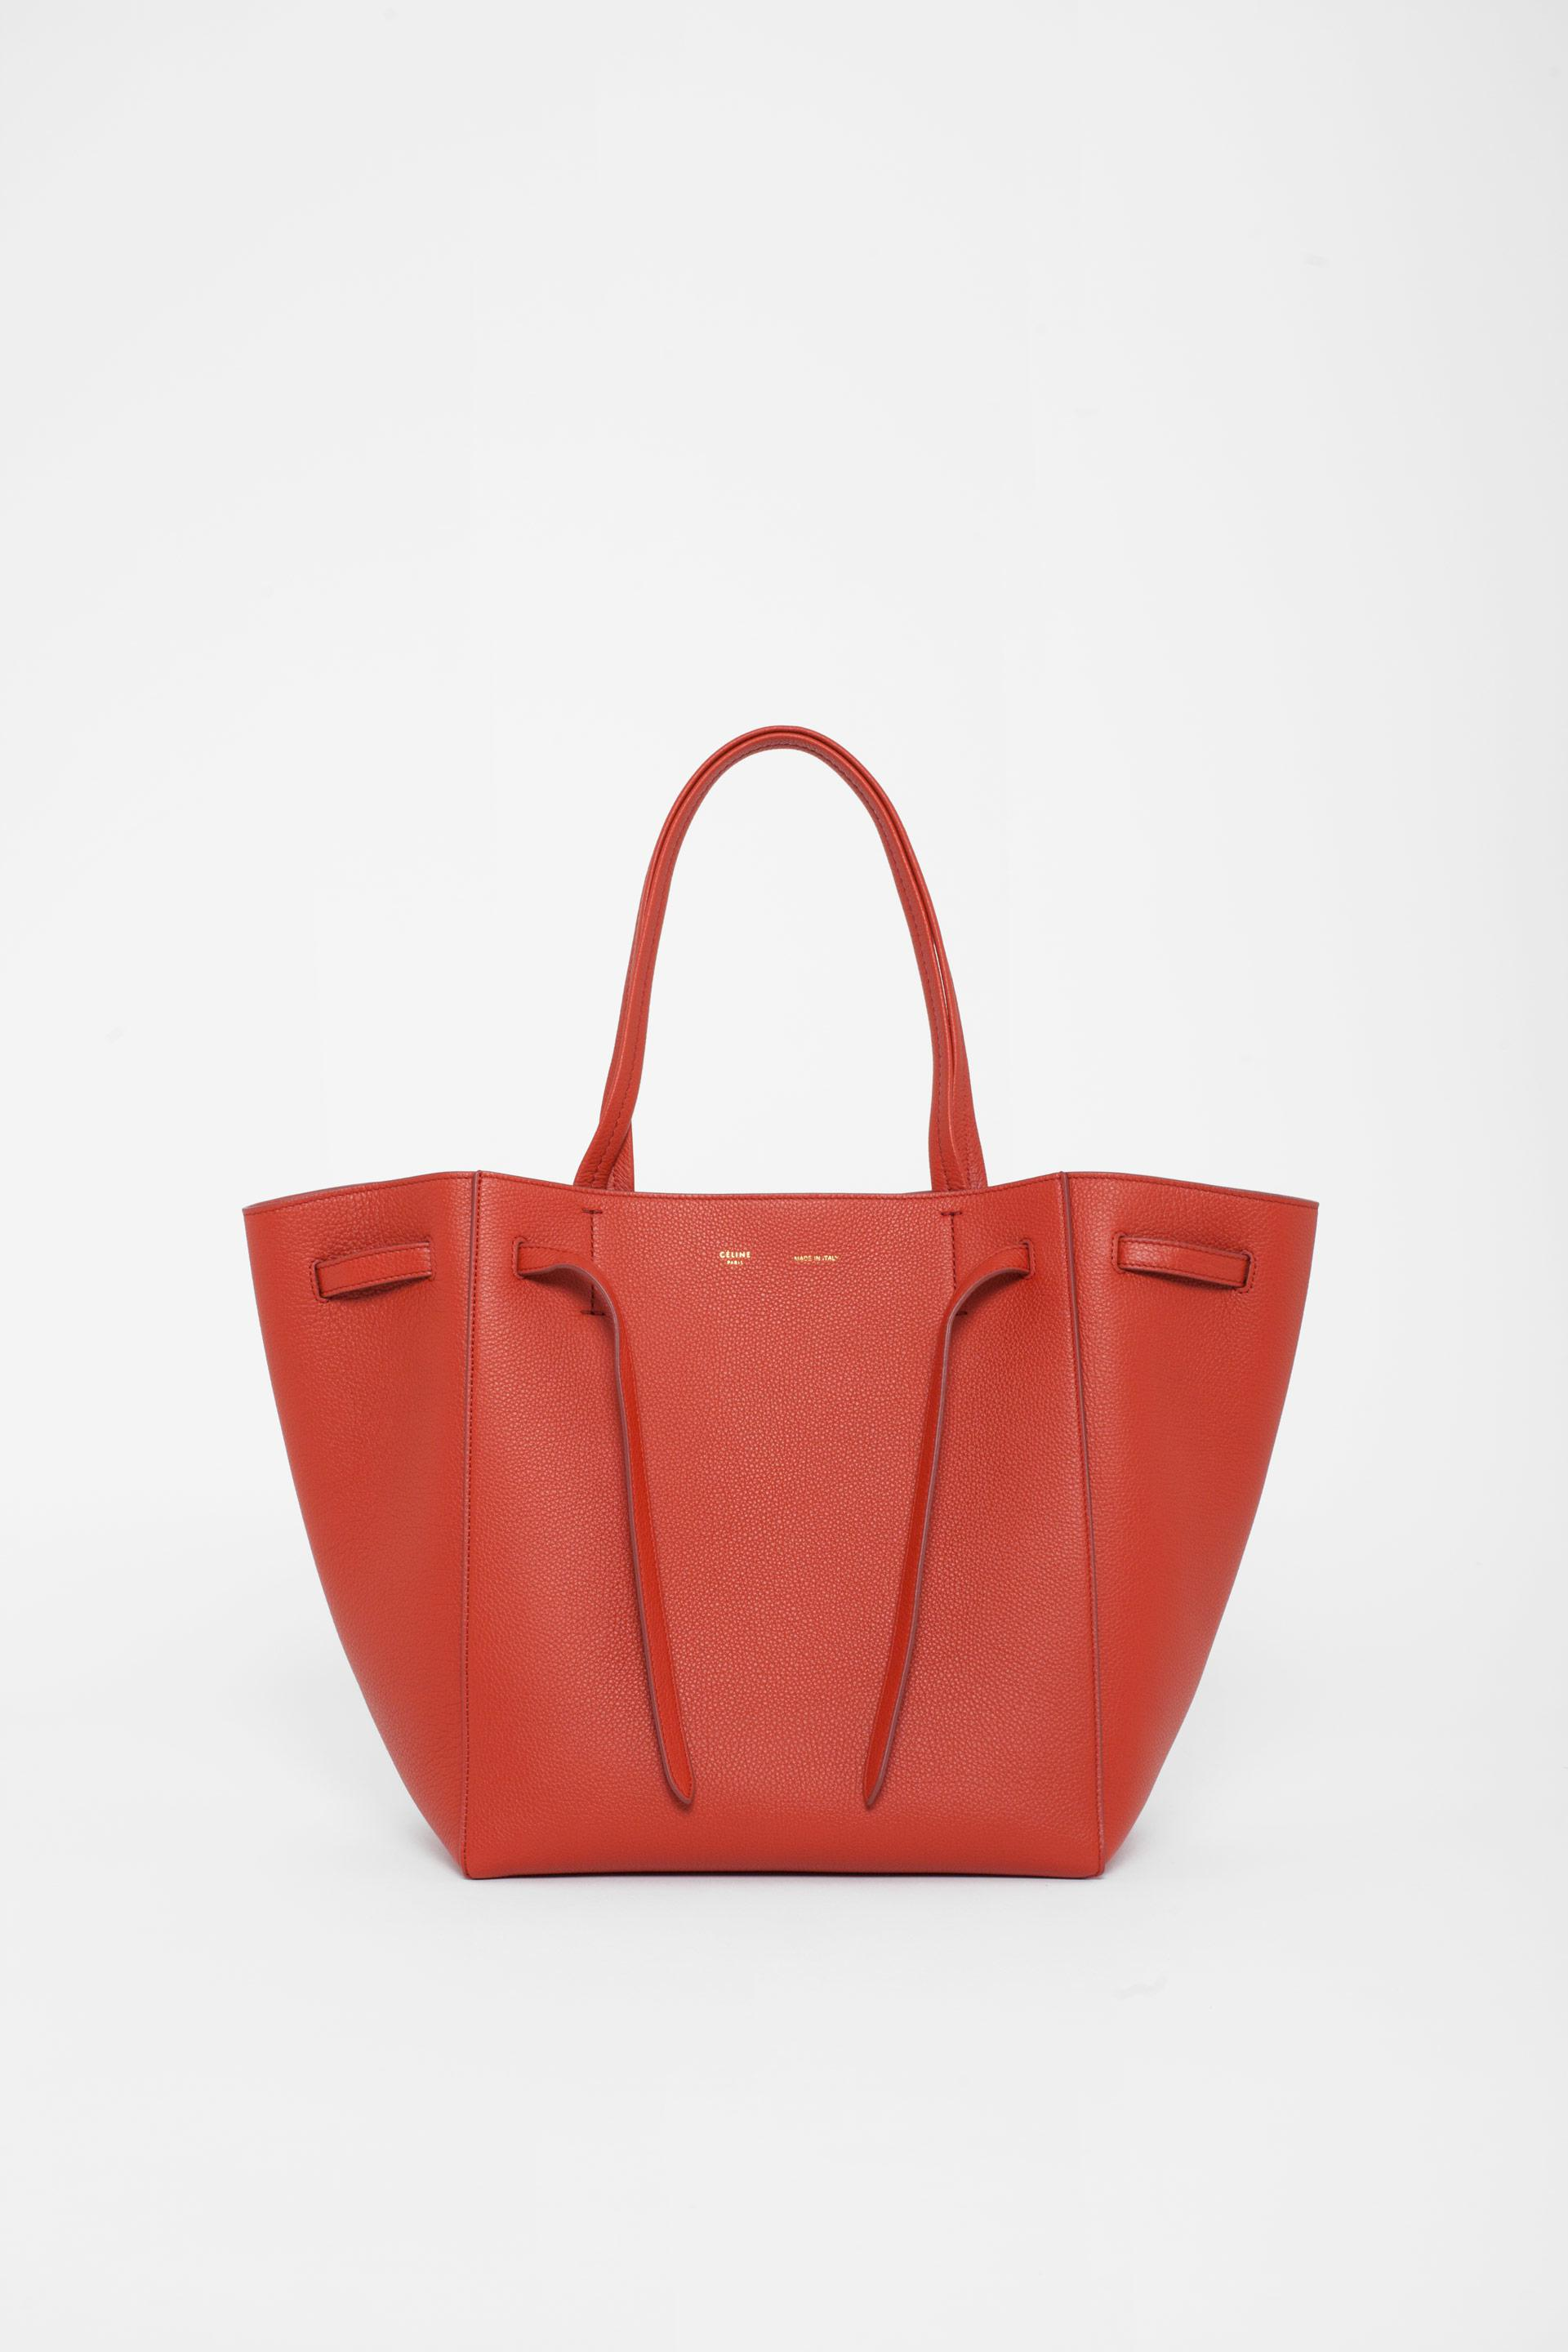 3e752dd0c3 Céline Small Cabas Phantom in Red - Lyst